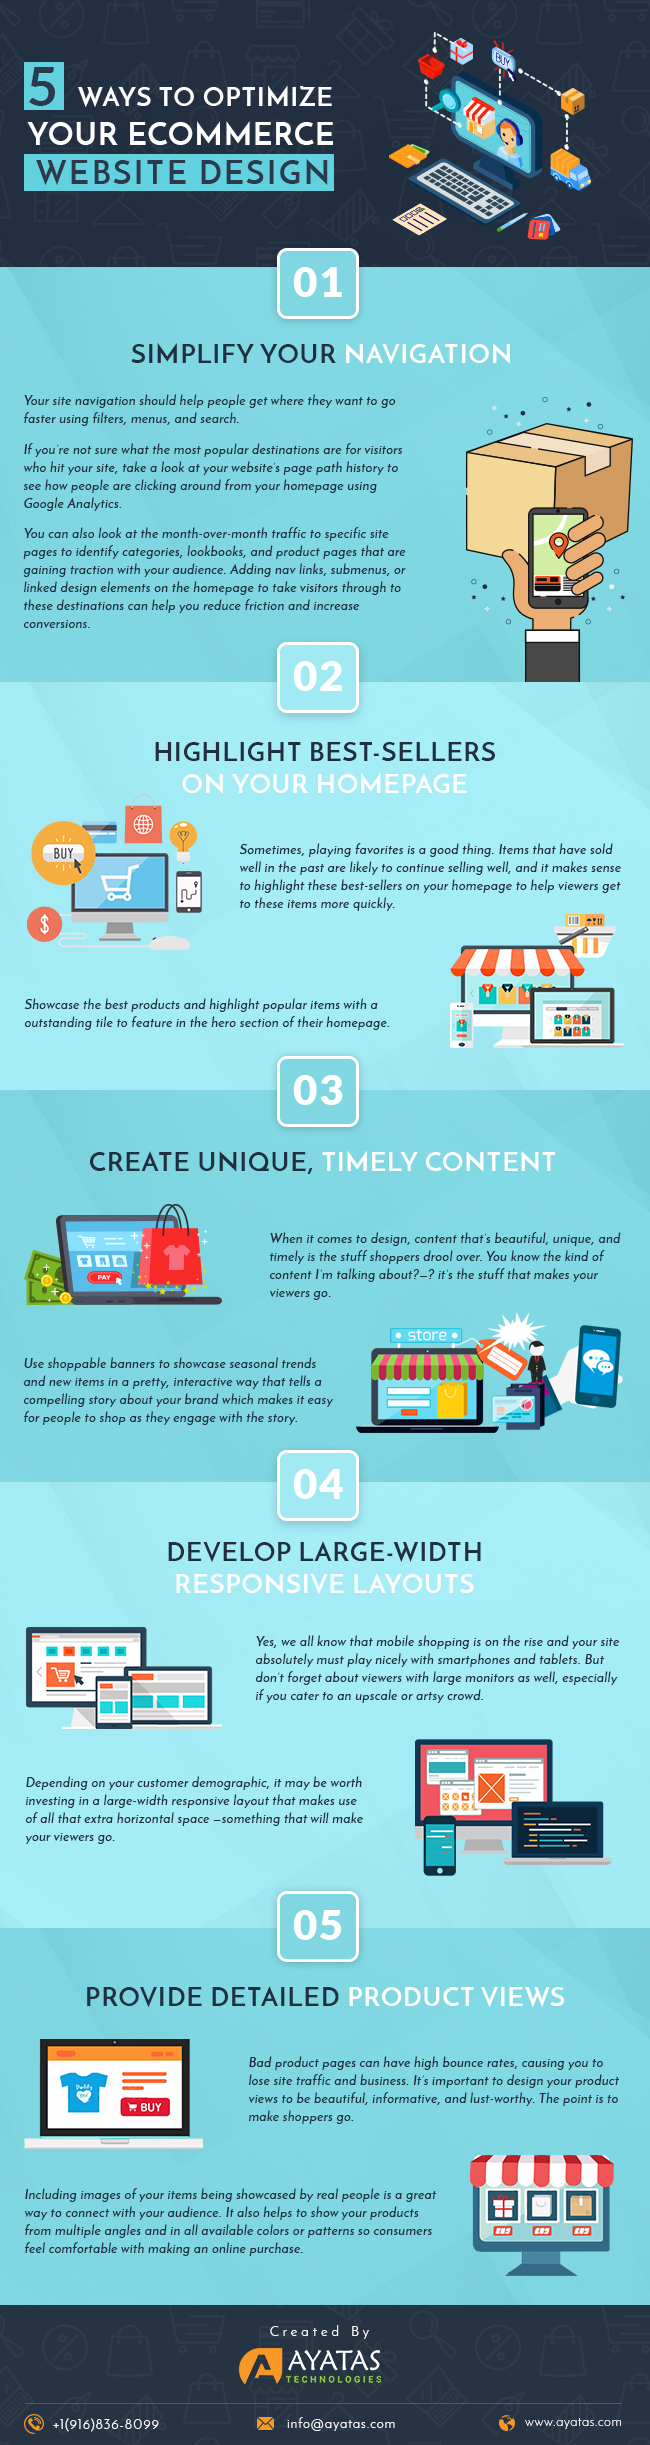 5-Simple-Ways-to-Optimize-your-eCommerce-Website-Design-Infographic-plaza